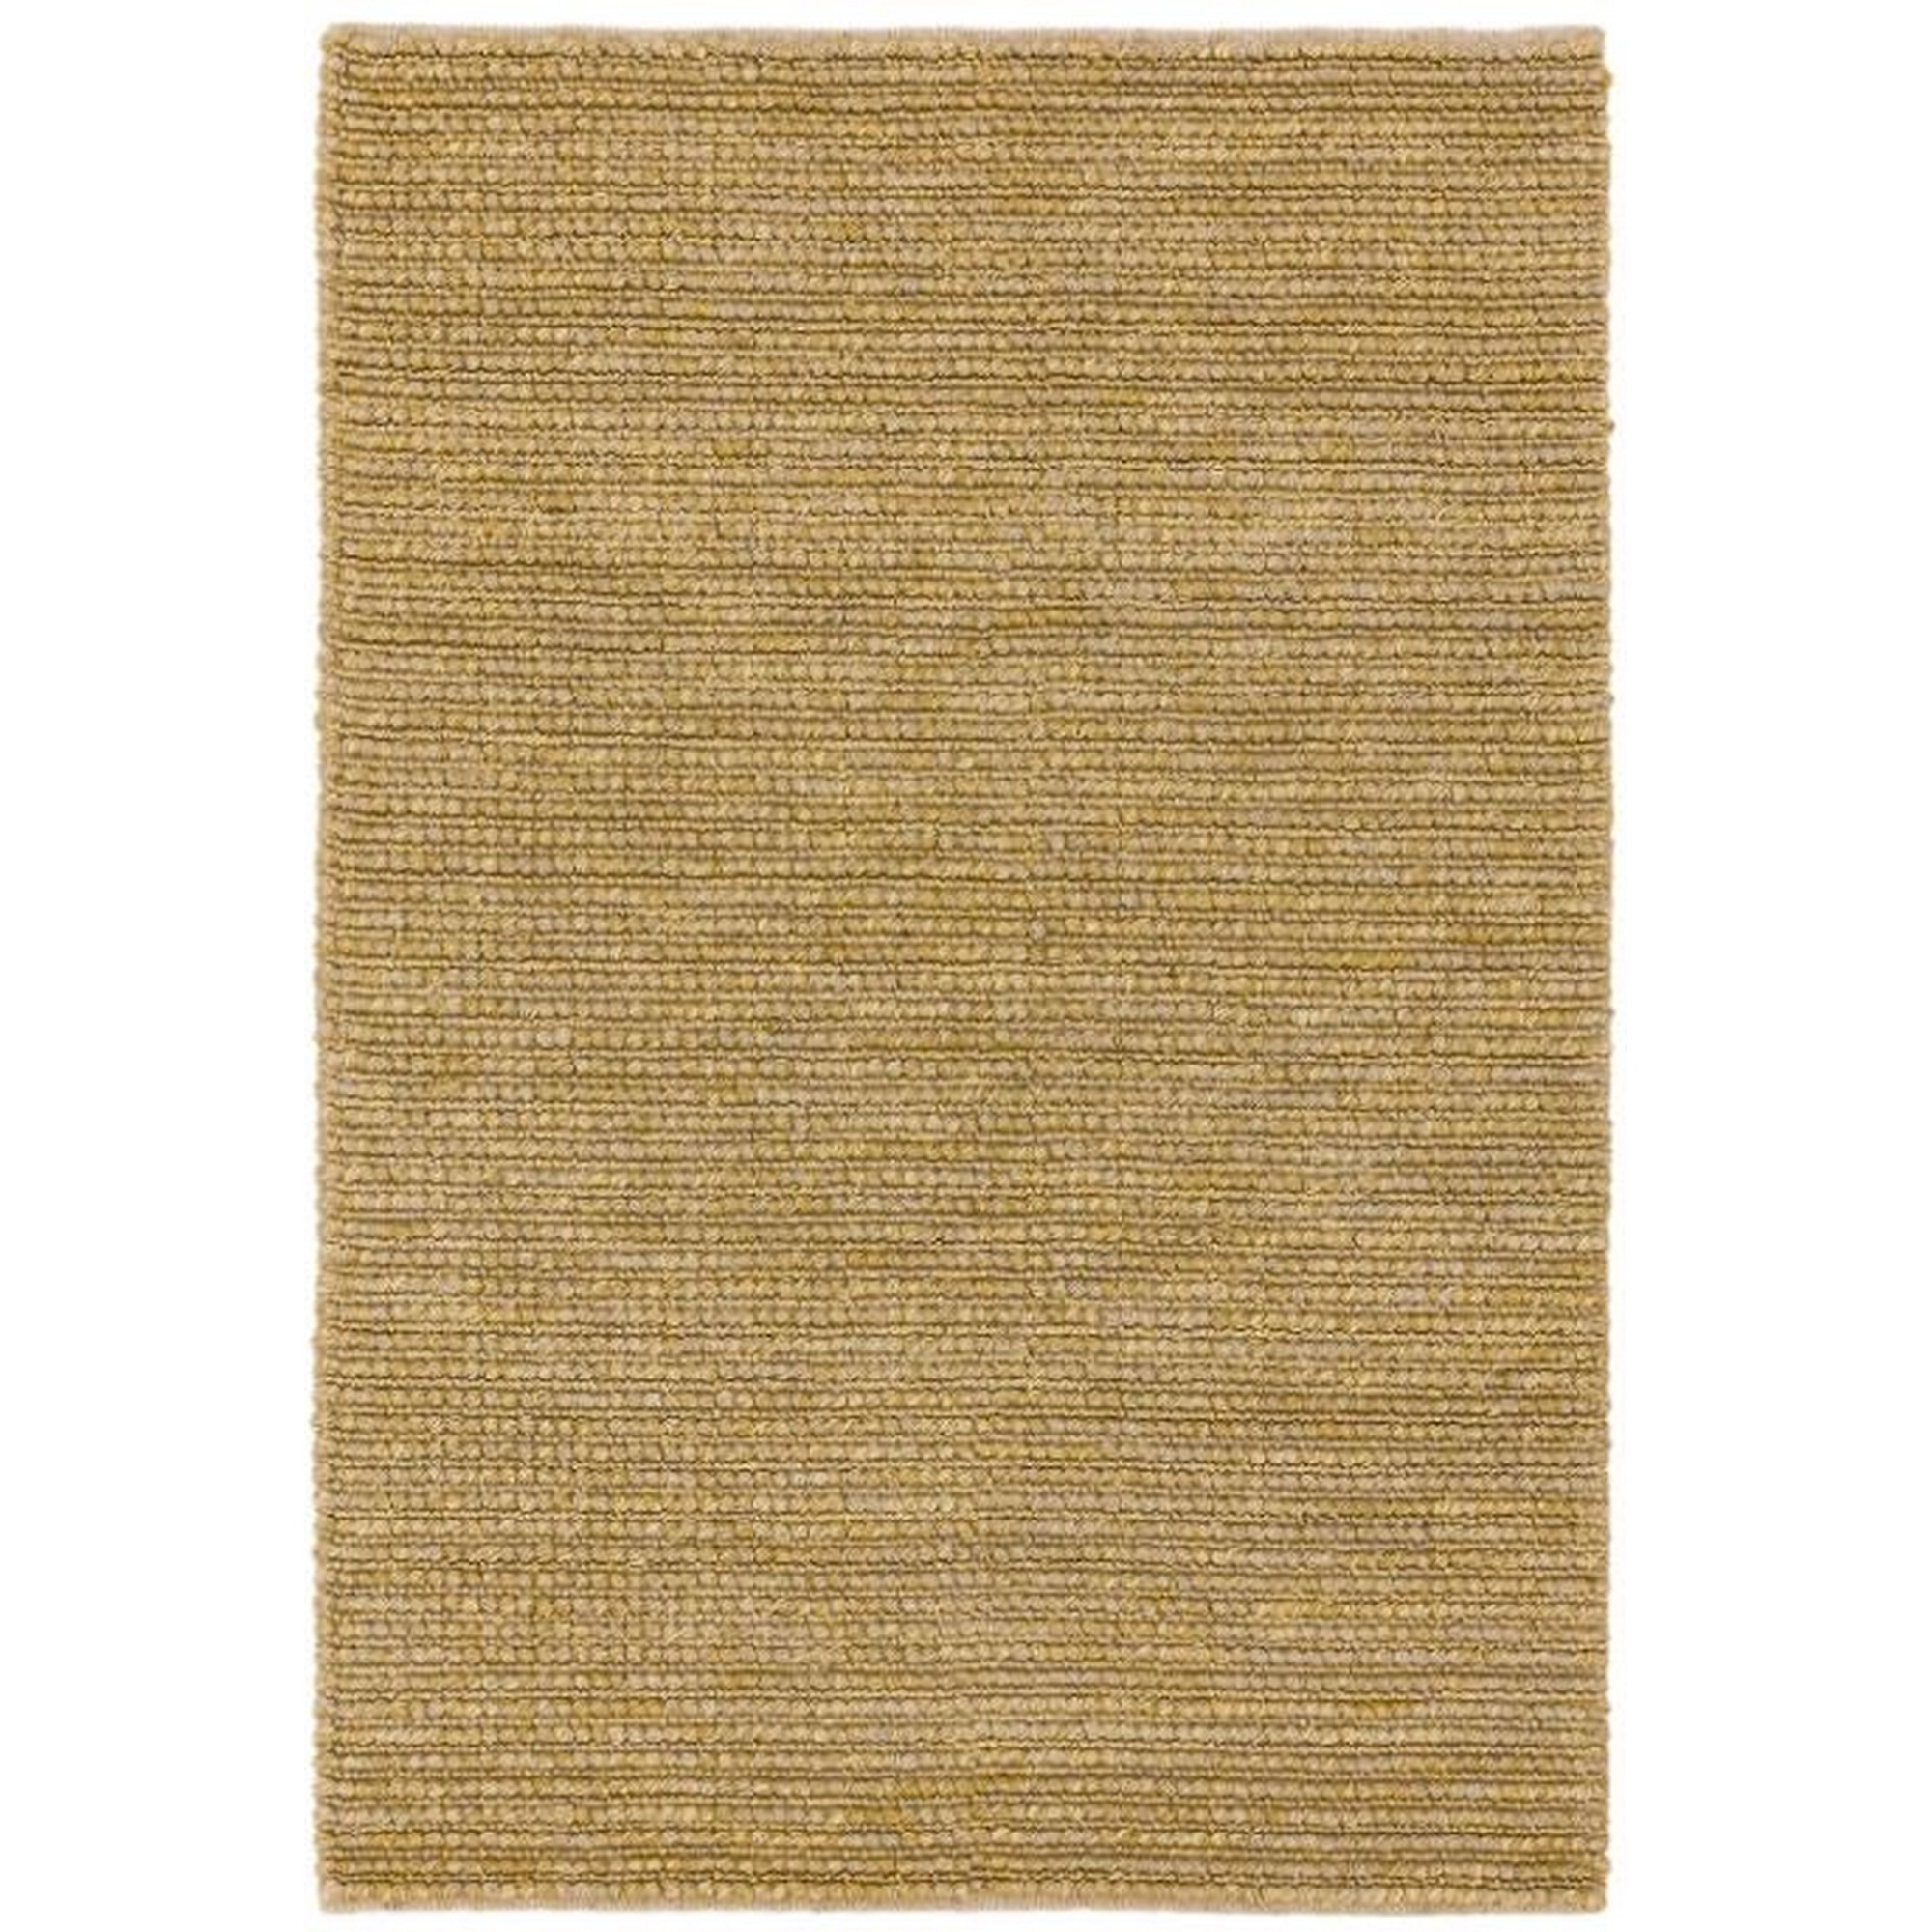 Jute Rugs in Natural